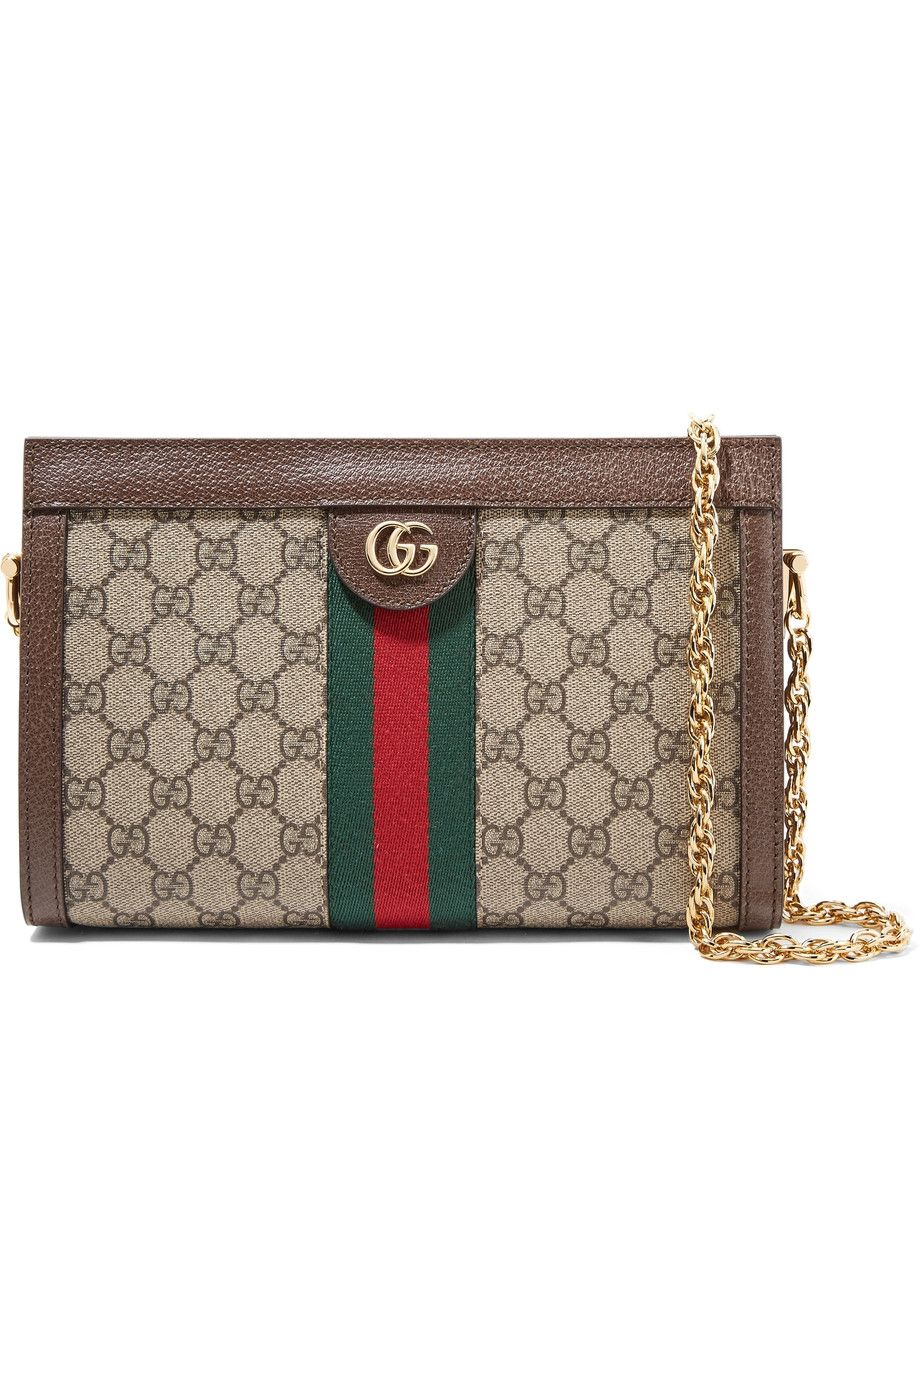 Ophidia Textured Leather-trimmed Printed Coated-canvas Shoulder Bag - Beige Gucci Jh1WmU15nZ